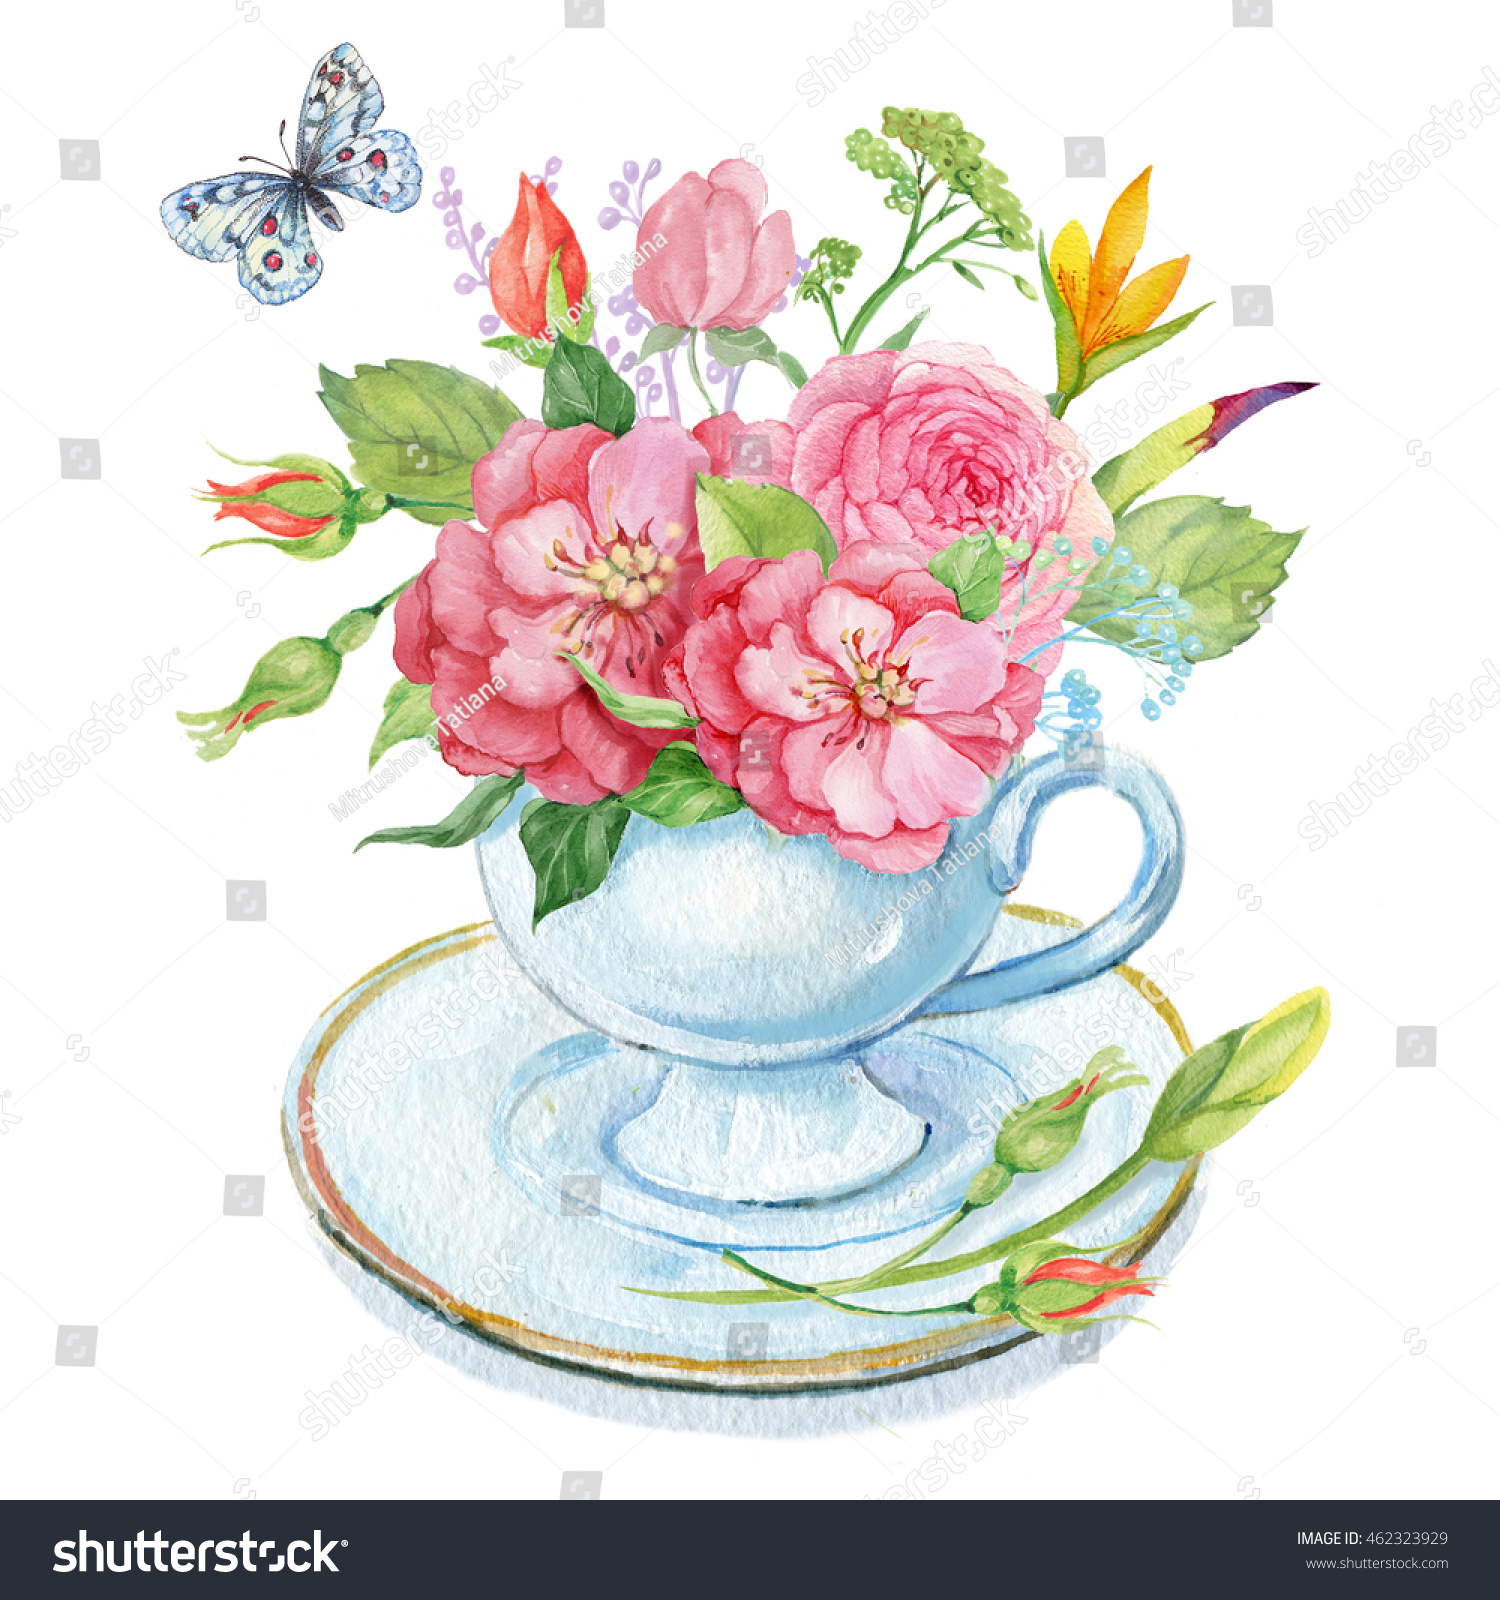 Bouquet flowers cup butterflywatercolor illustration stock a bouquet of flowers in a cup and butterflywatercolor illustration izmirmasajfo